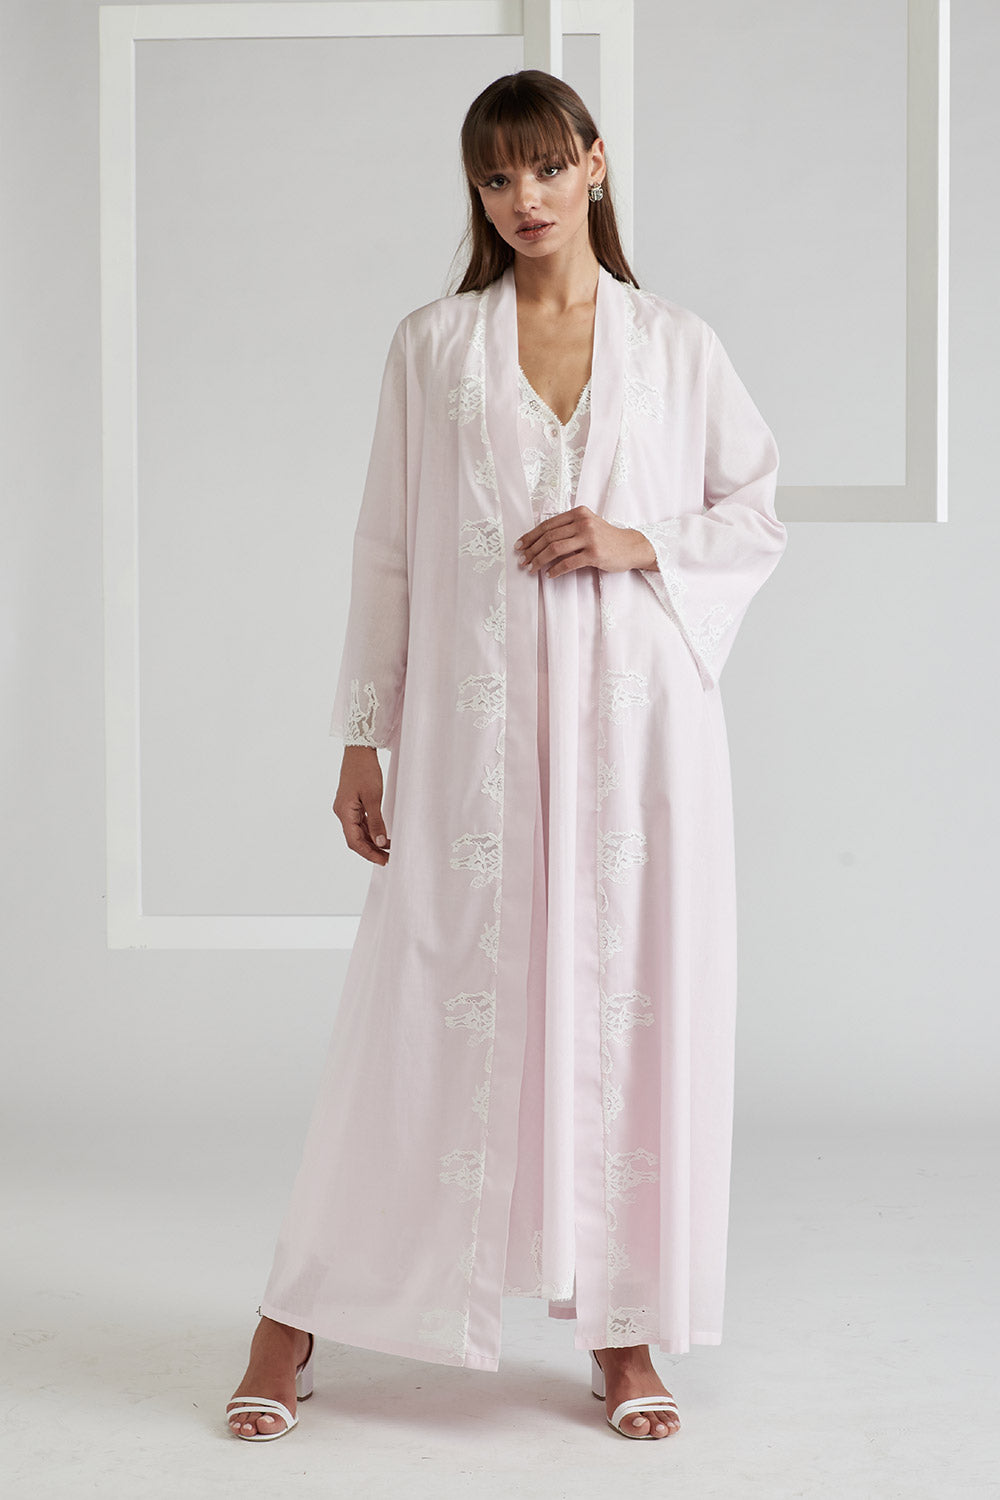 Trimmed Cotton Vual Robe and Trimmed Cotton Vual Nightie - Bloom (Ecru) Light Pink